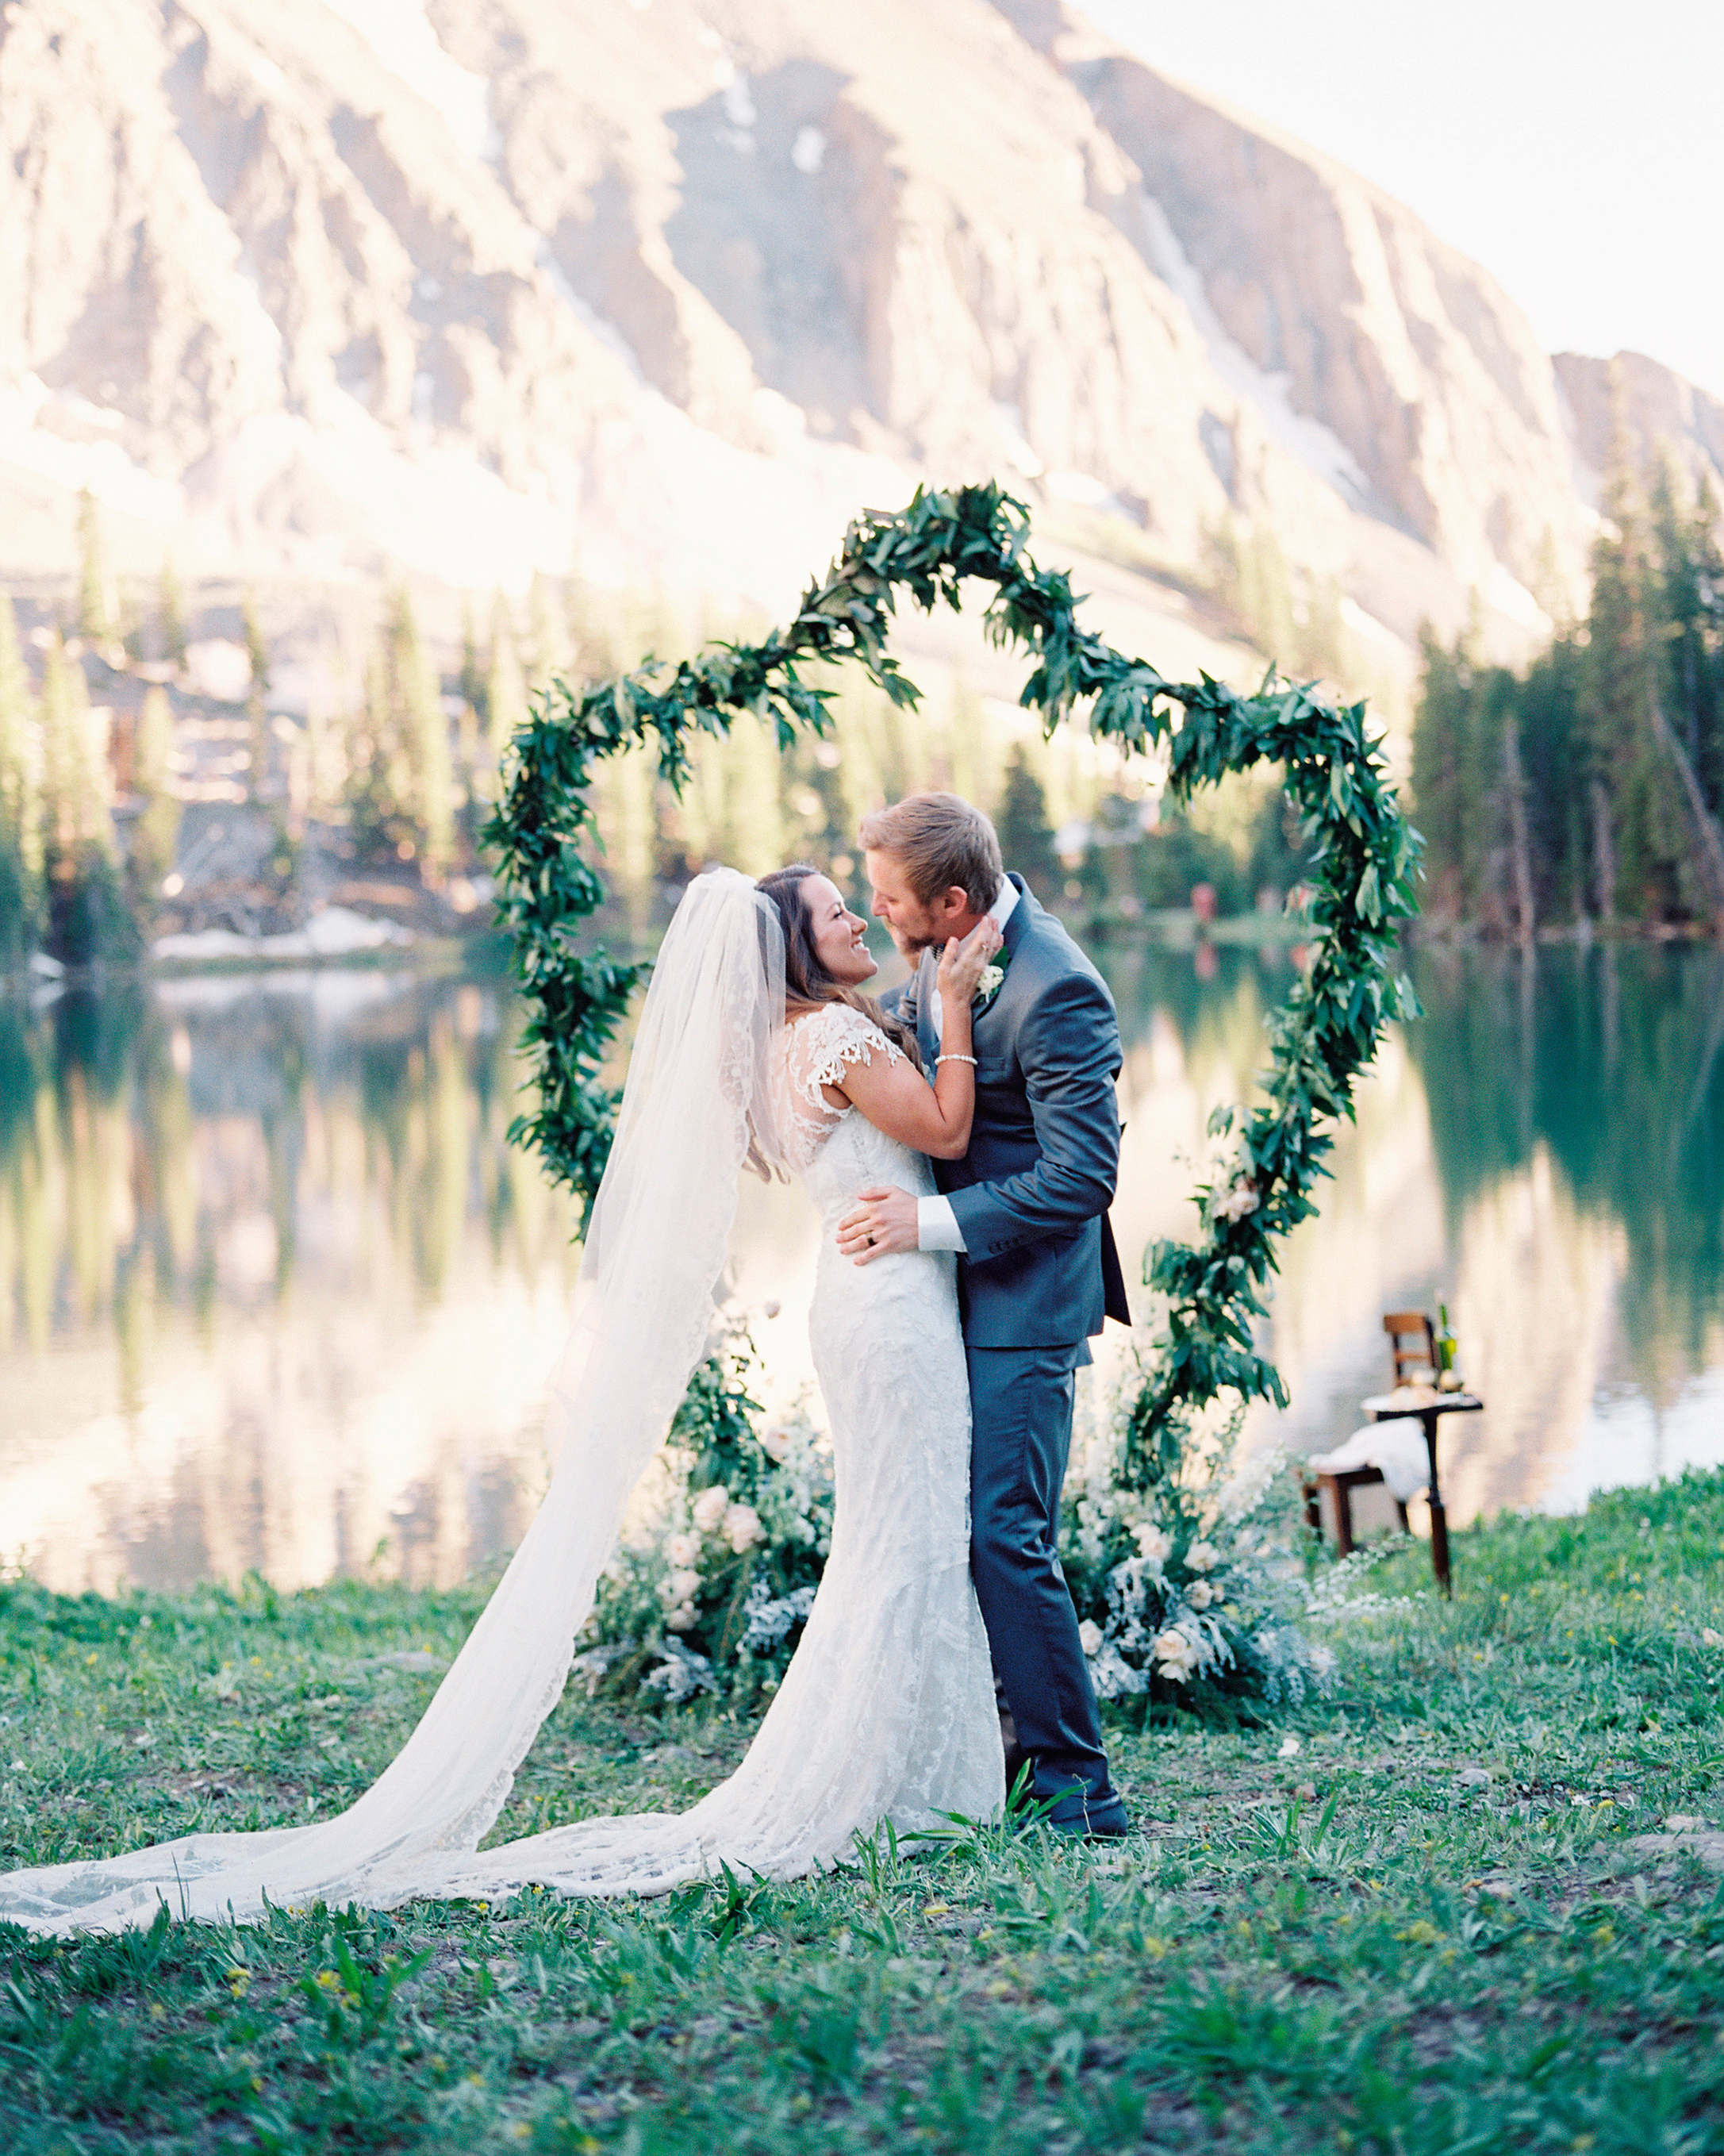 mckenzie-brandon-wedding-kiss-26-s112364-1115.jpg